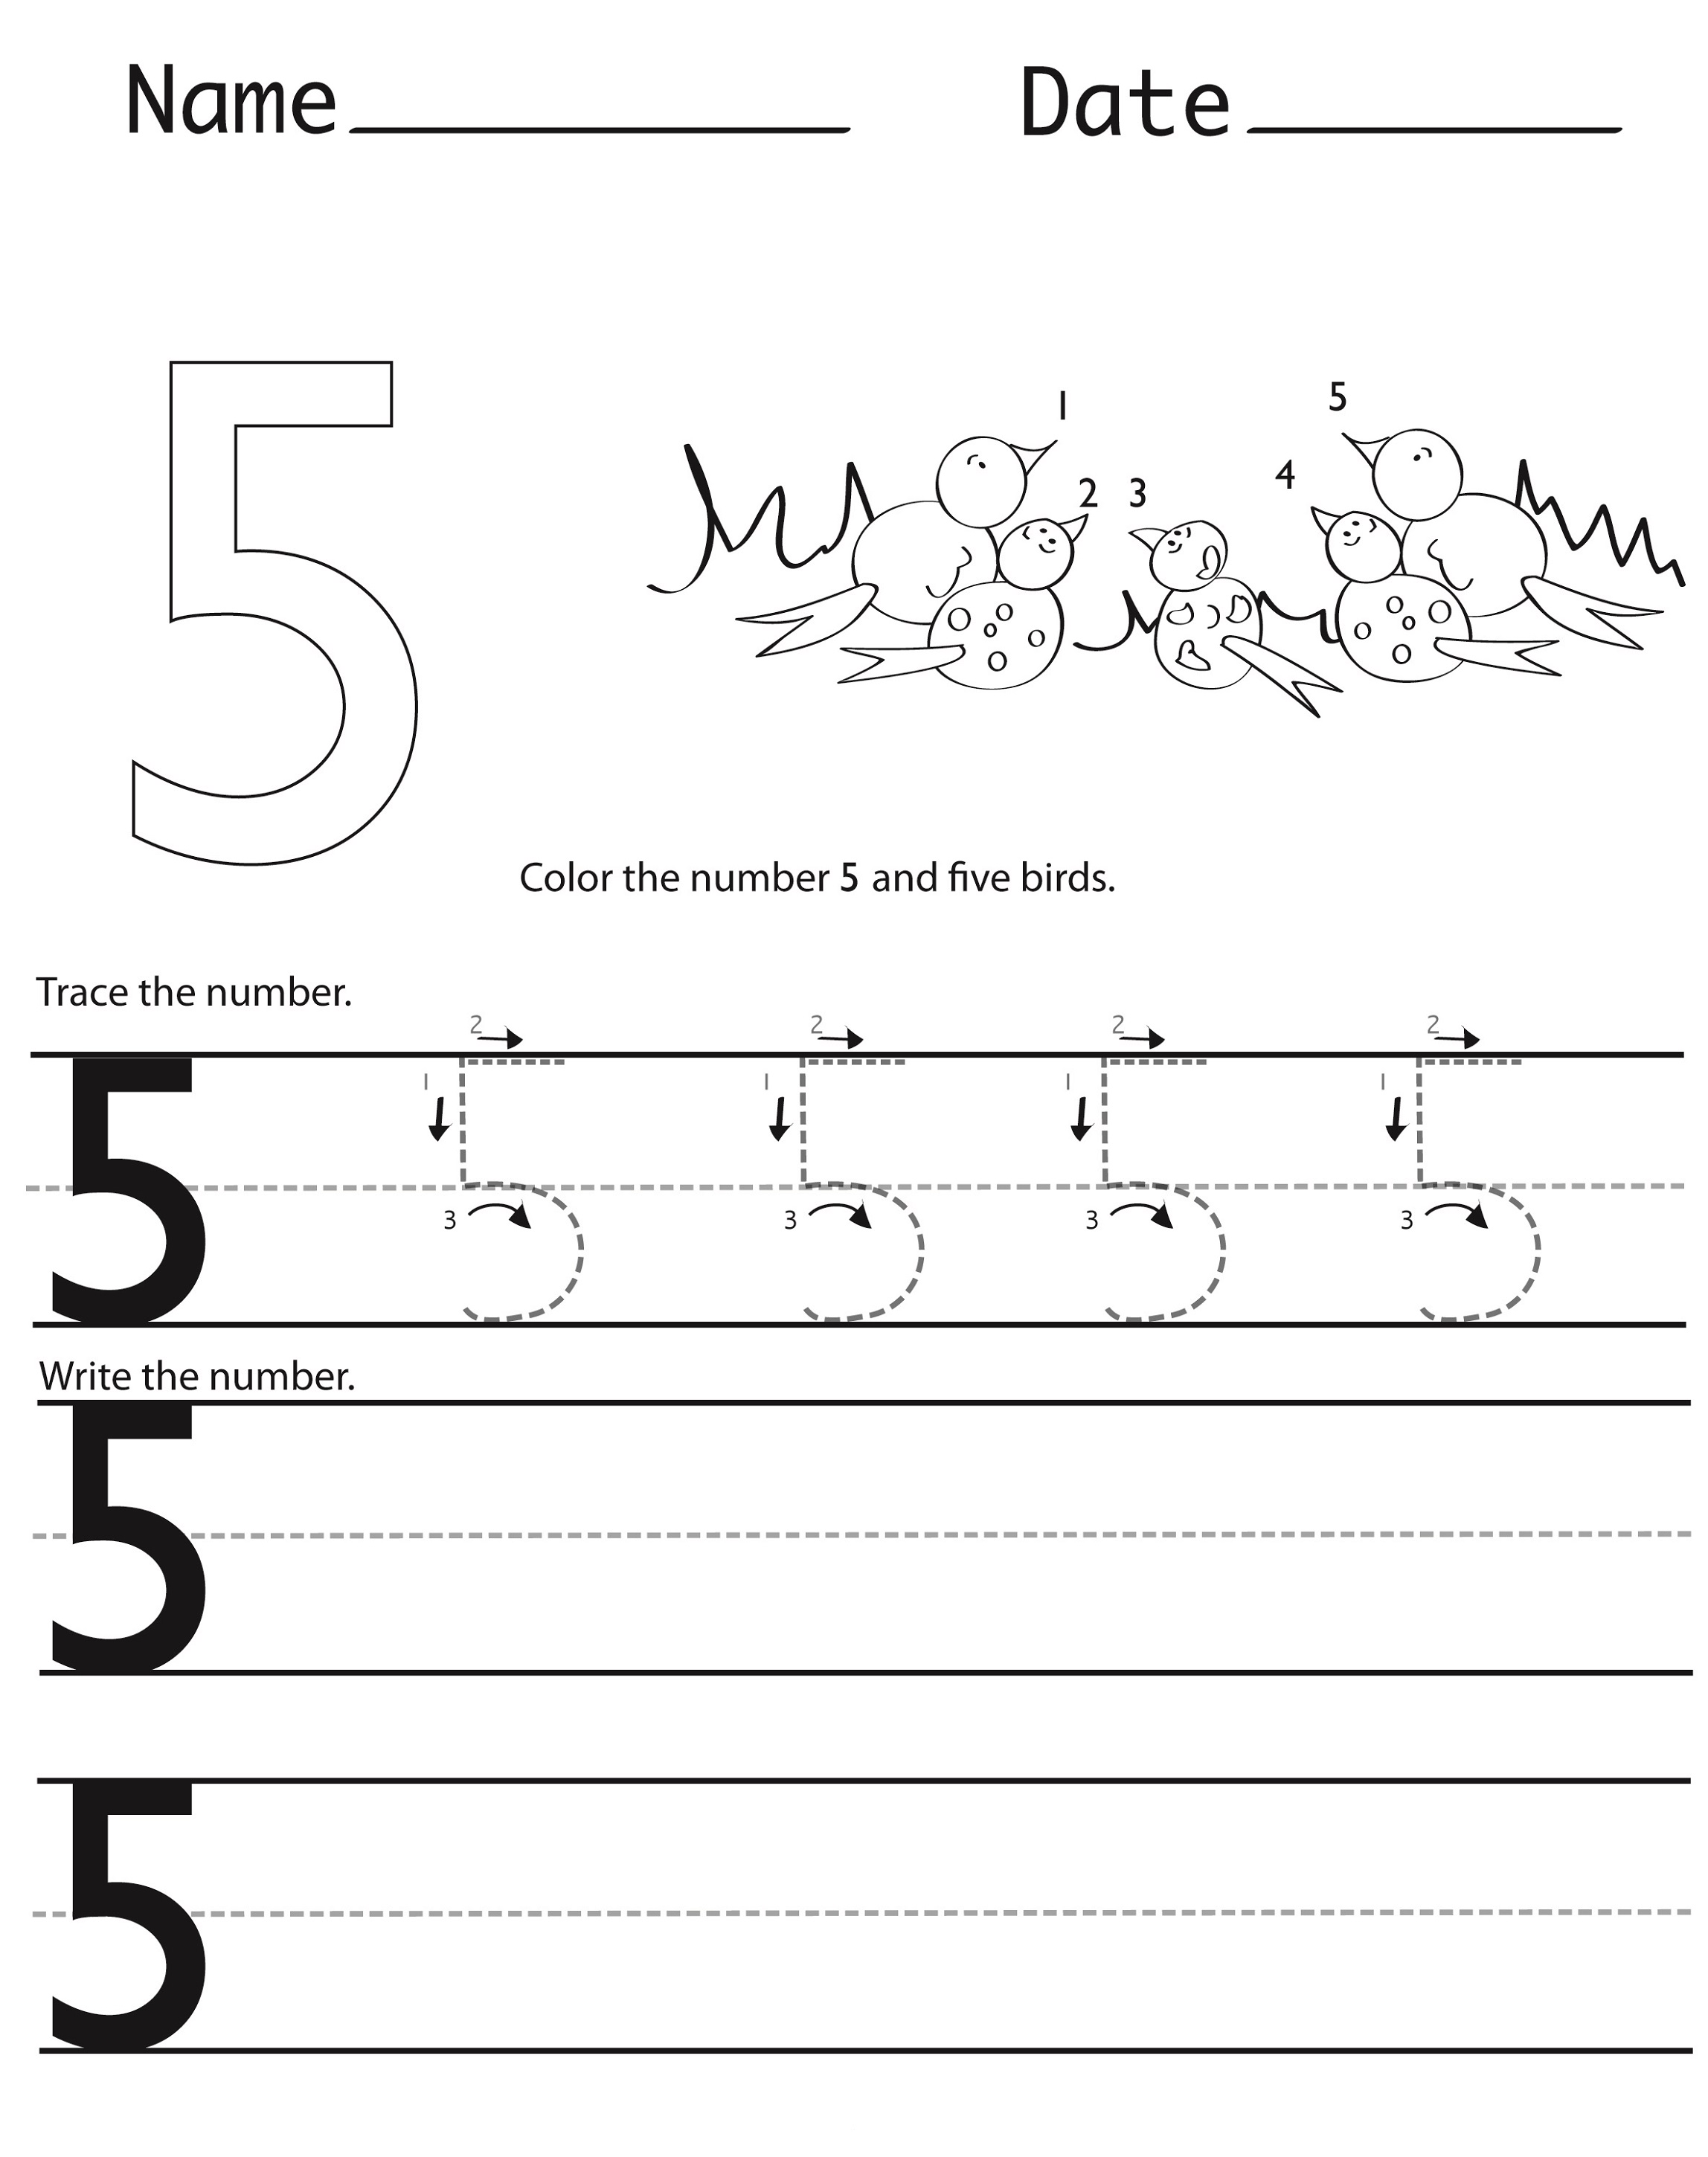 Handwriting Practice Worksheets Numbers